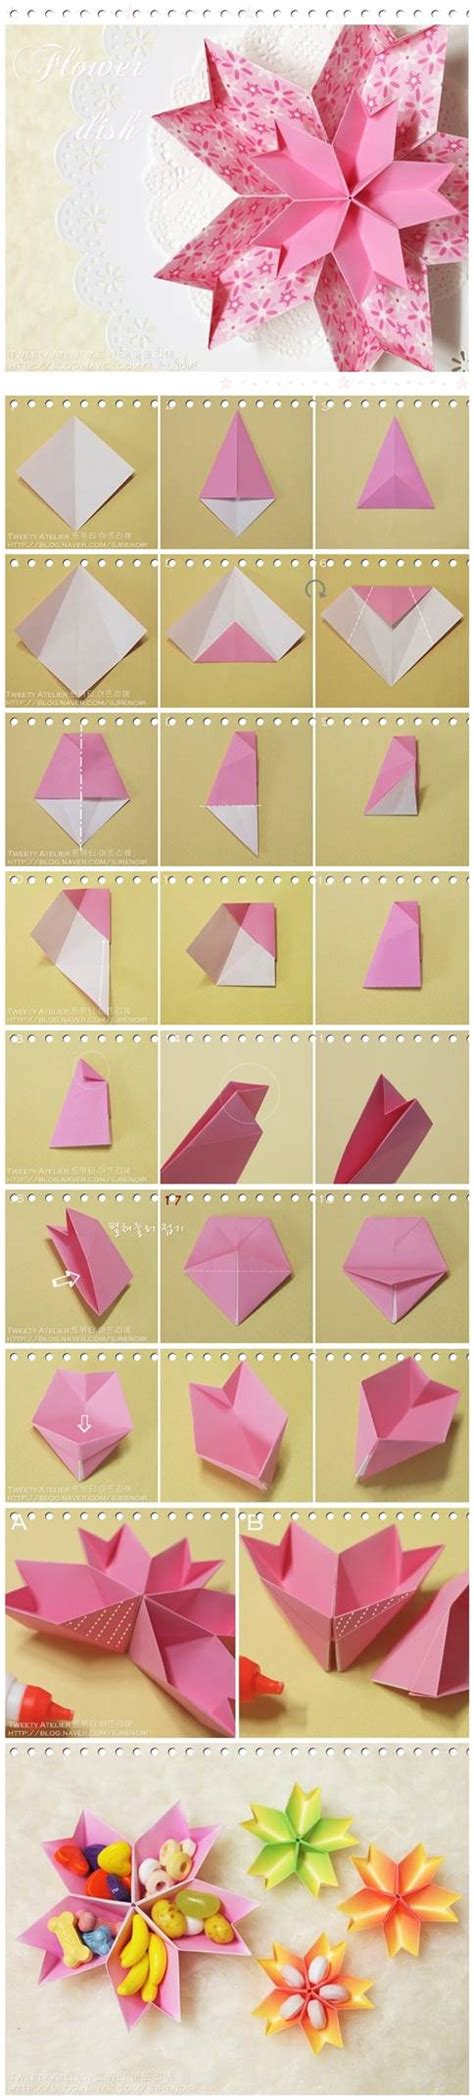 How To Make A Paper Carnation - how to make paper flower dish step by step diy tutorial